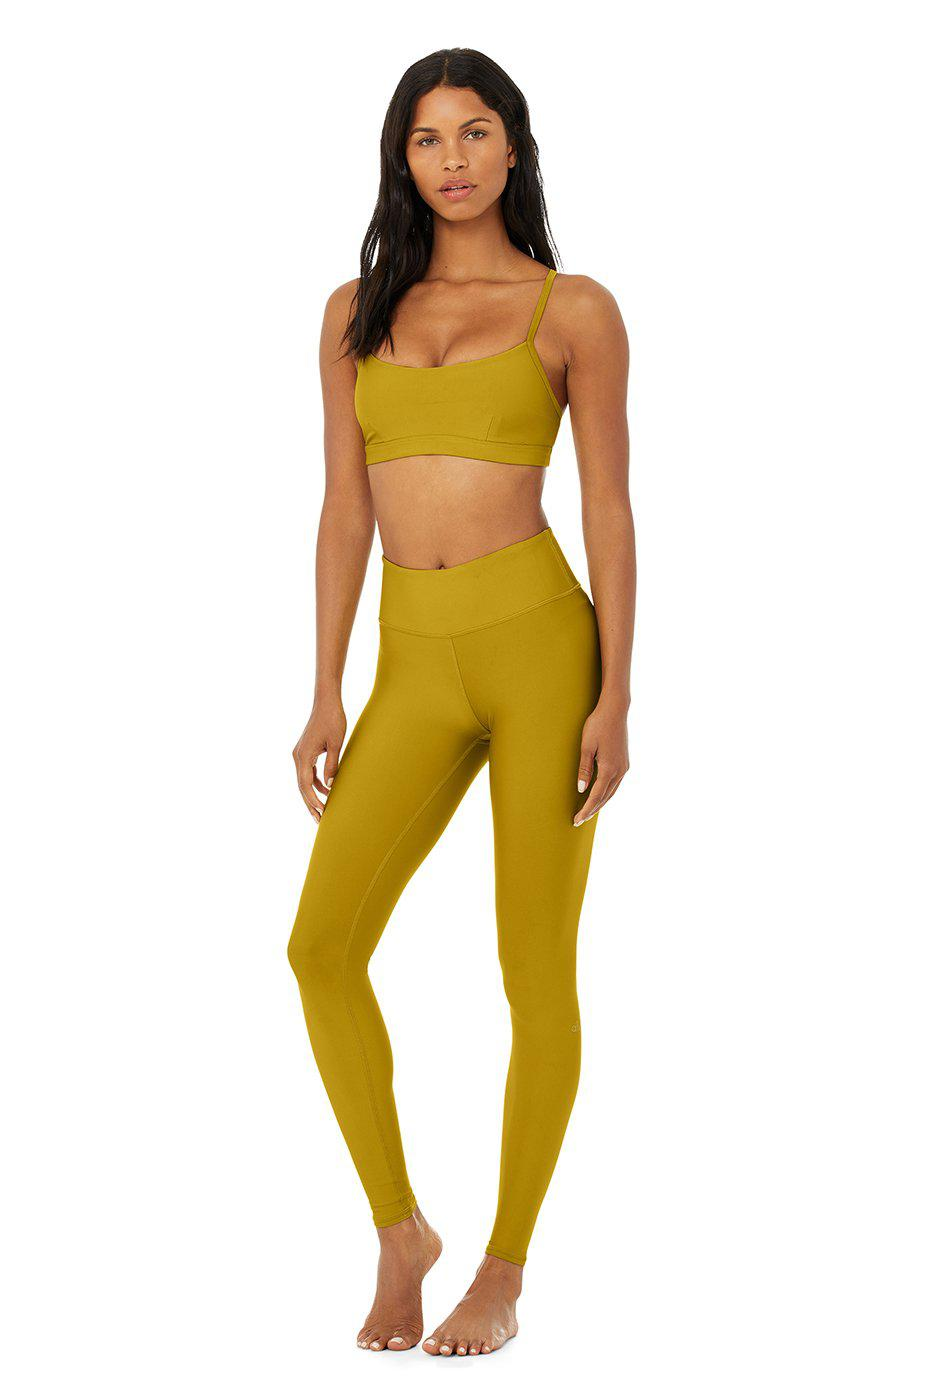 Airlift Intrigue Bra - Chartreuse 5